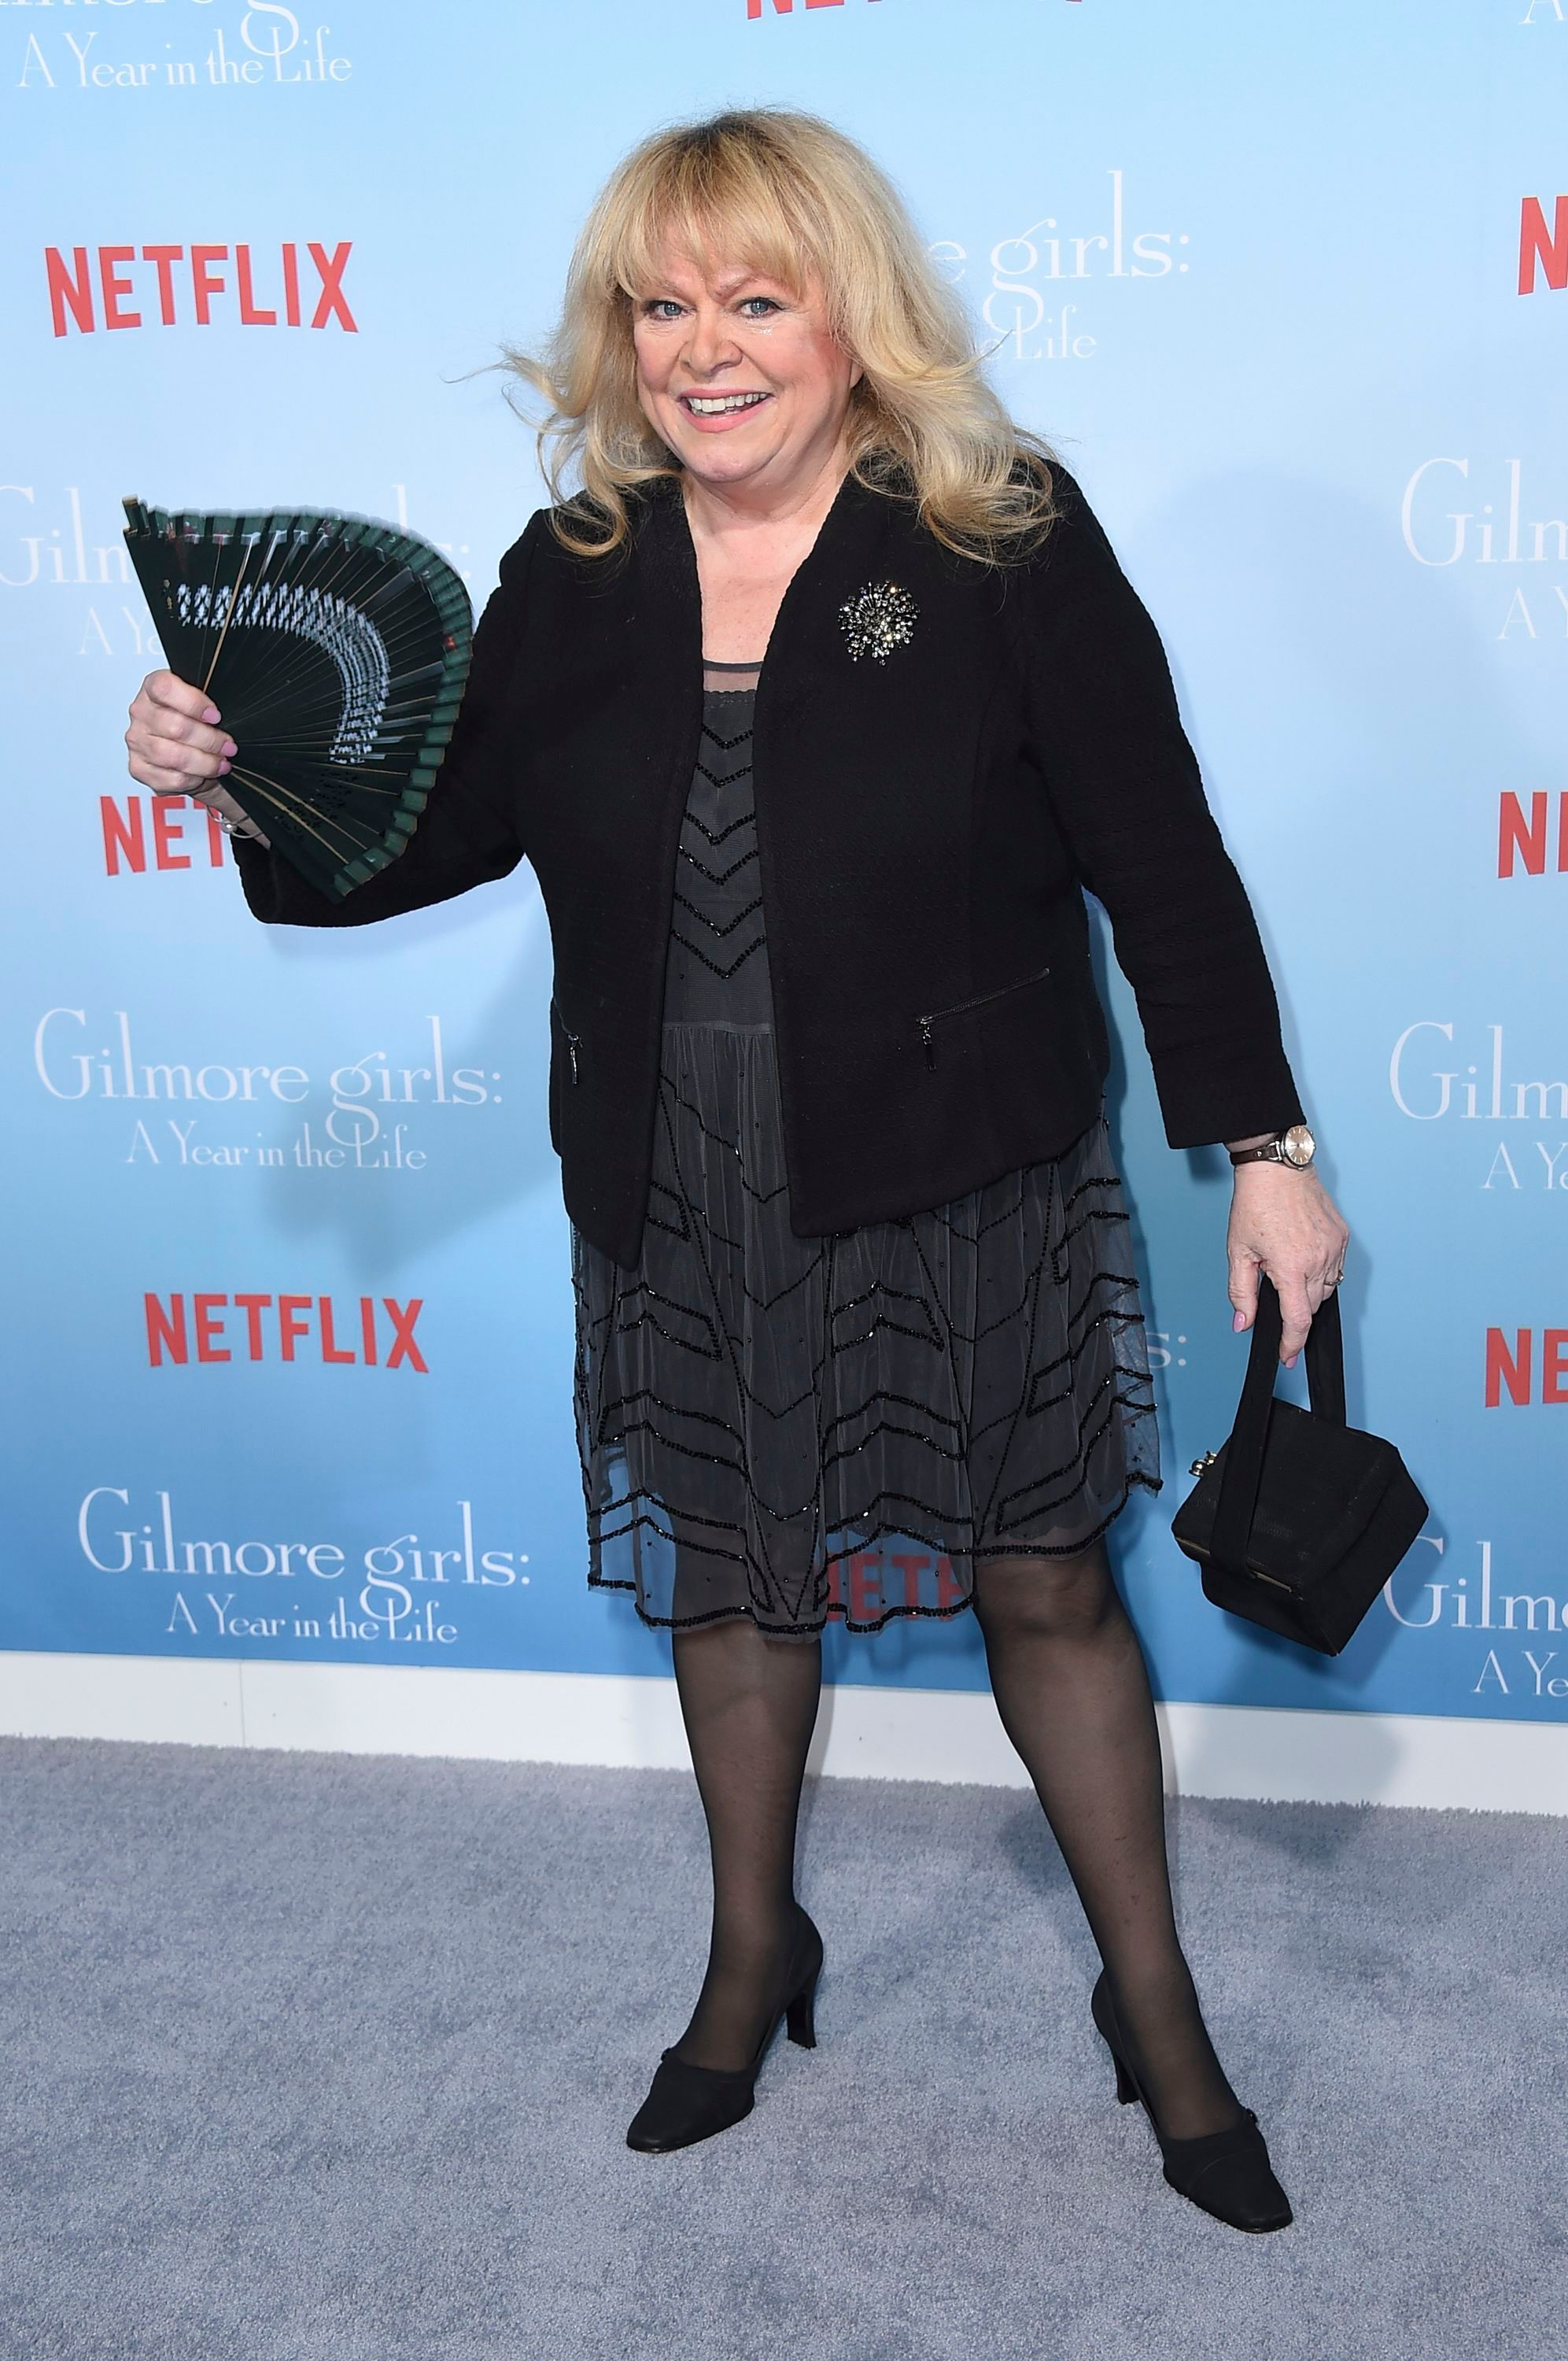 Sally Struthers Says 'All in the Family' Cast Got Along